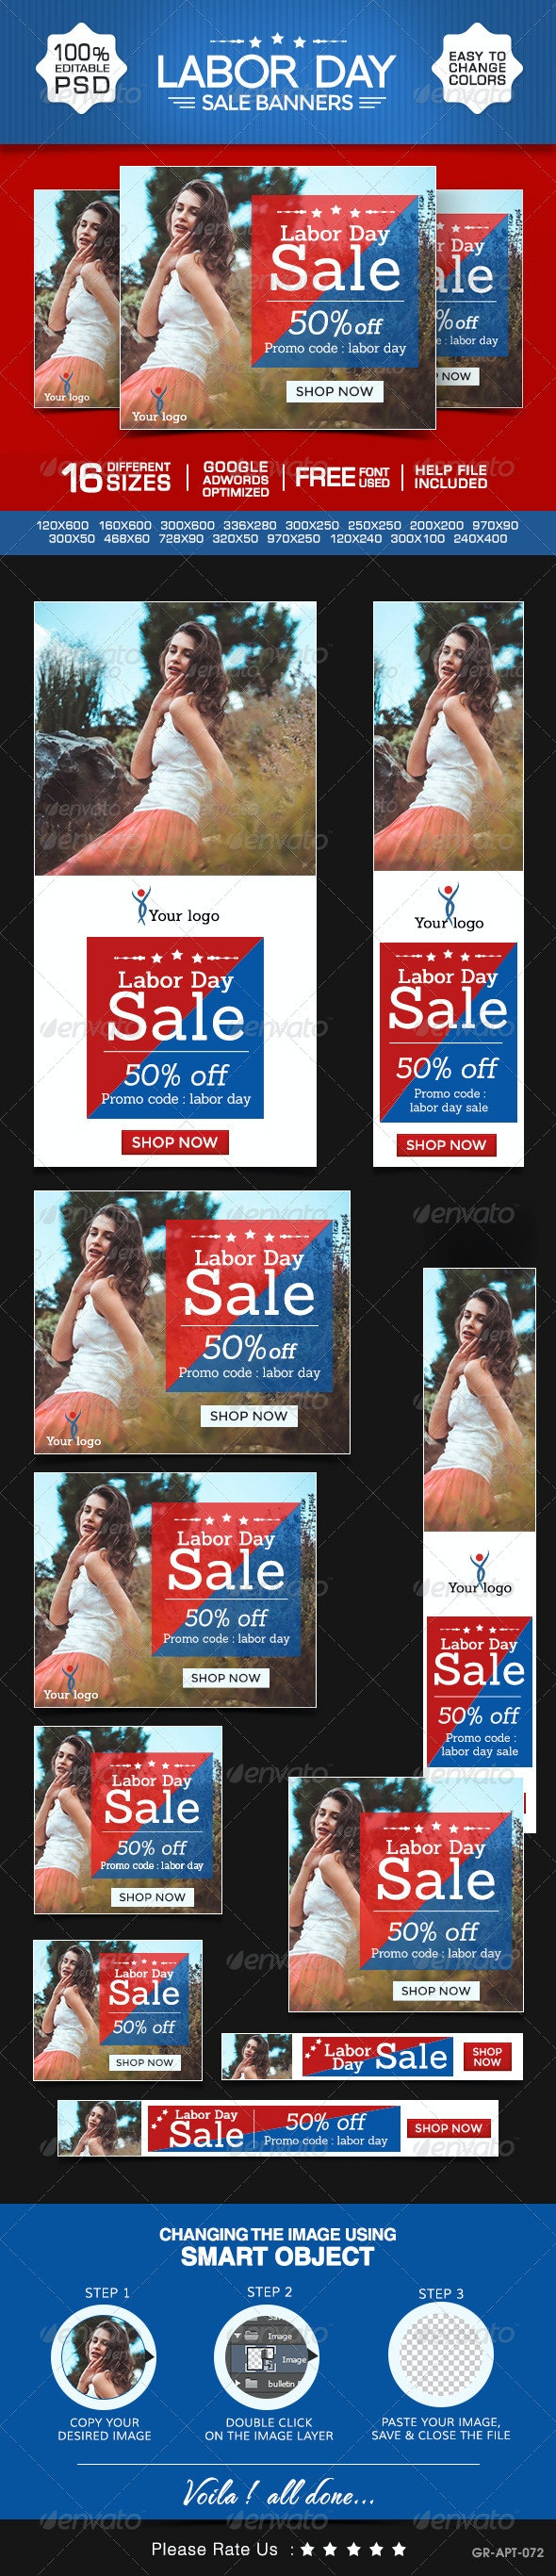 Labor Day Banners - Banners & Ads Web Elements